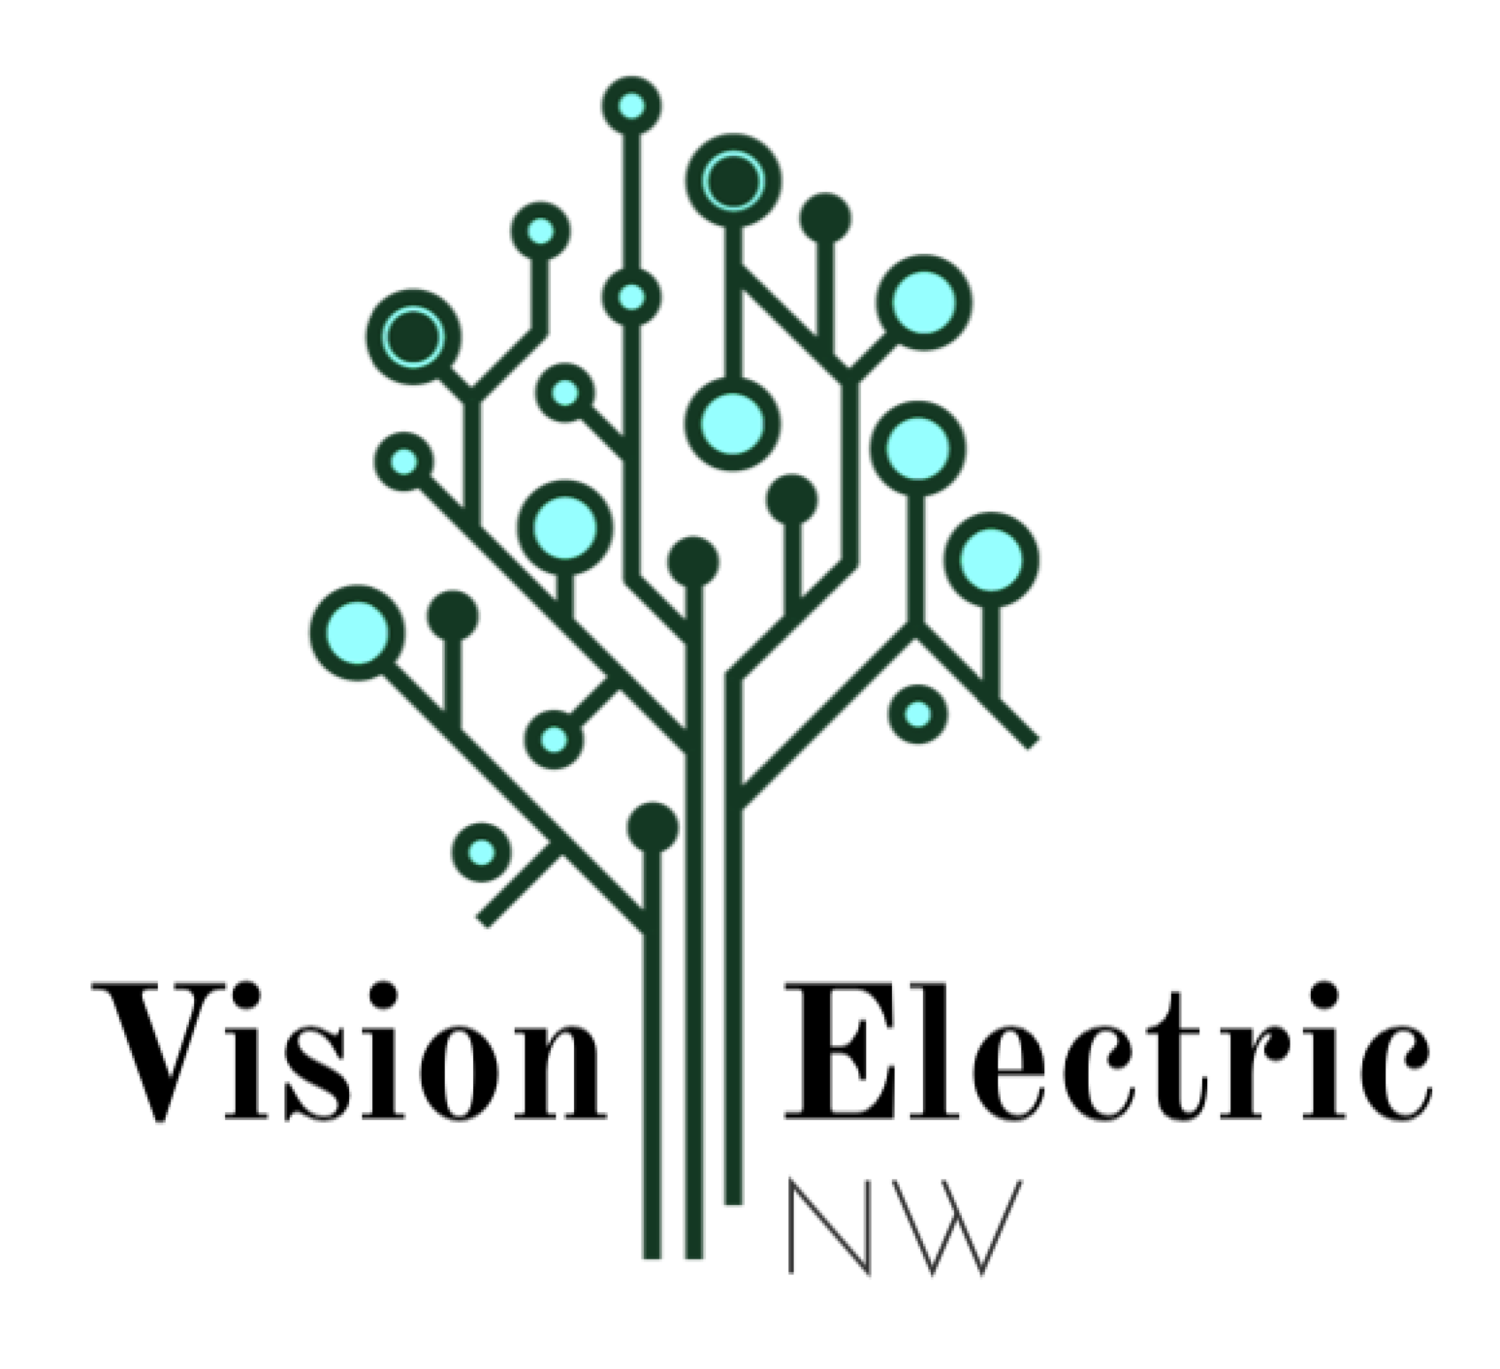 Vision Electric Northwest, INC.